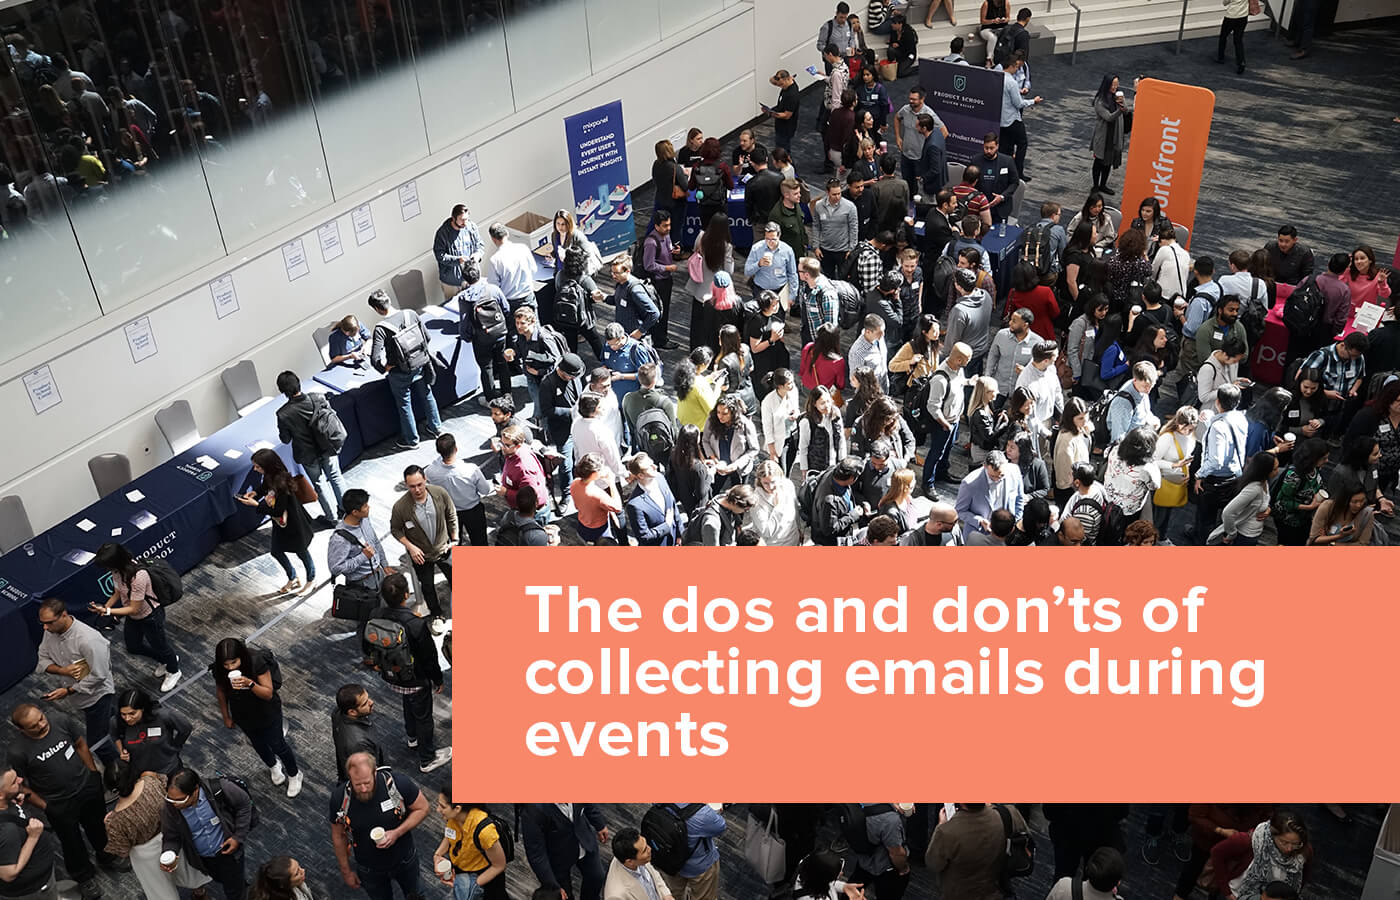 The dos and don'ts of collecting emails during events